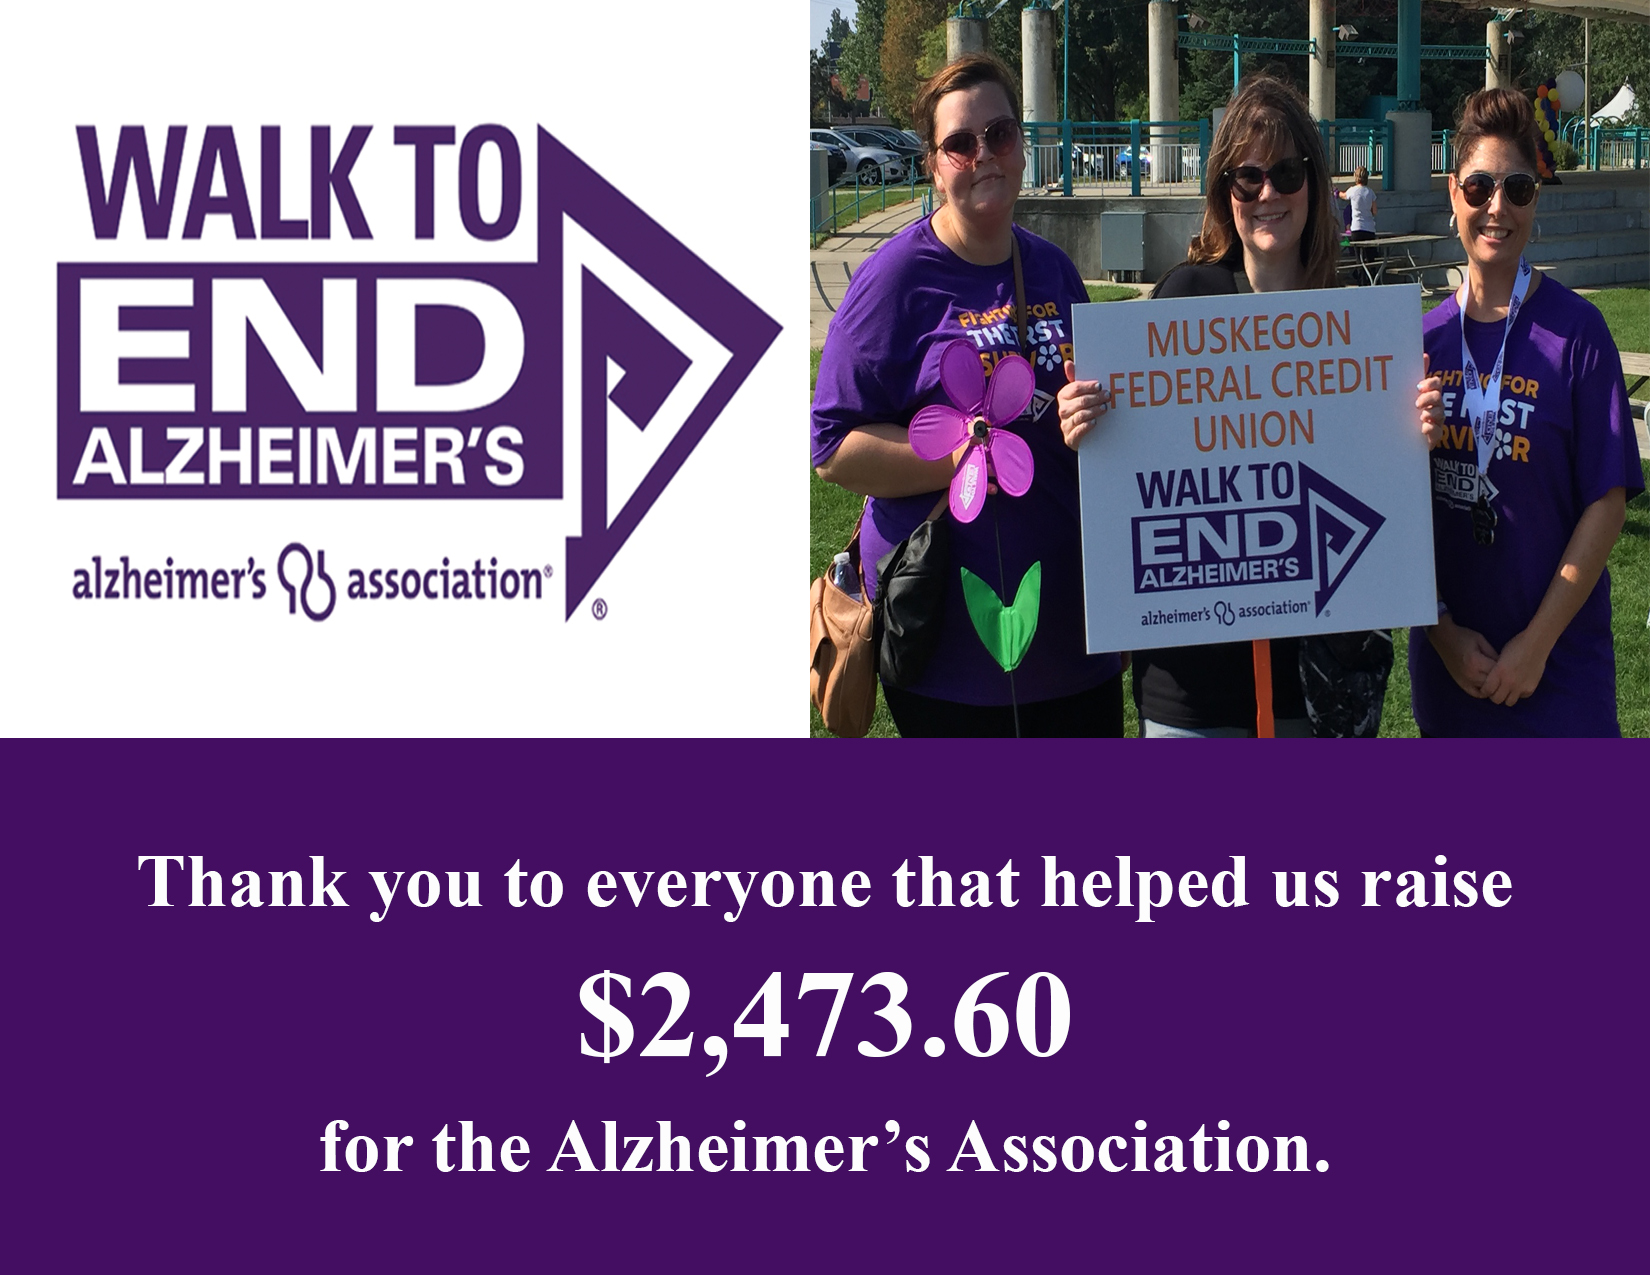 THANK YOU TO EVERYONE THAT HELPED US RAISE TWO THOUSAND TWO HUNDRED AND TWENTY THREE DOLLARS AND SIXTY CENTS FOR THE ALZHEIMER'S ASSOCIATION.